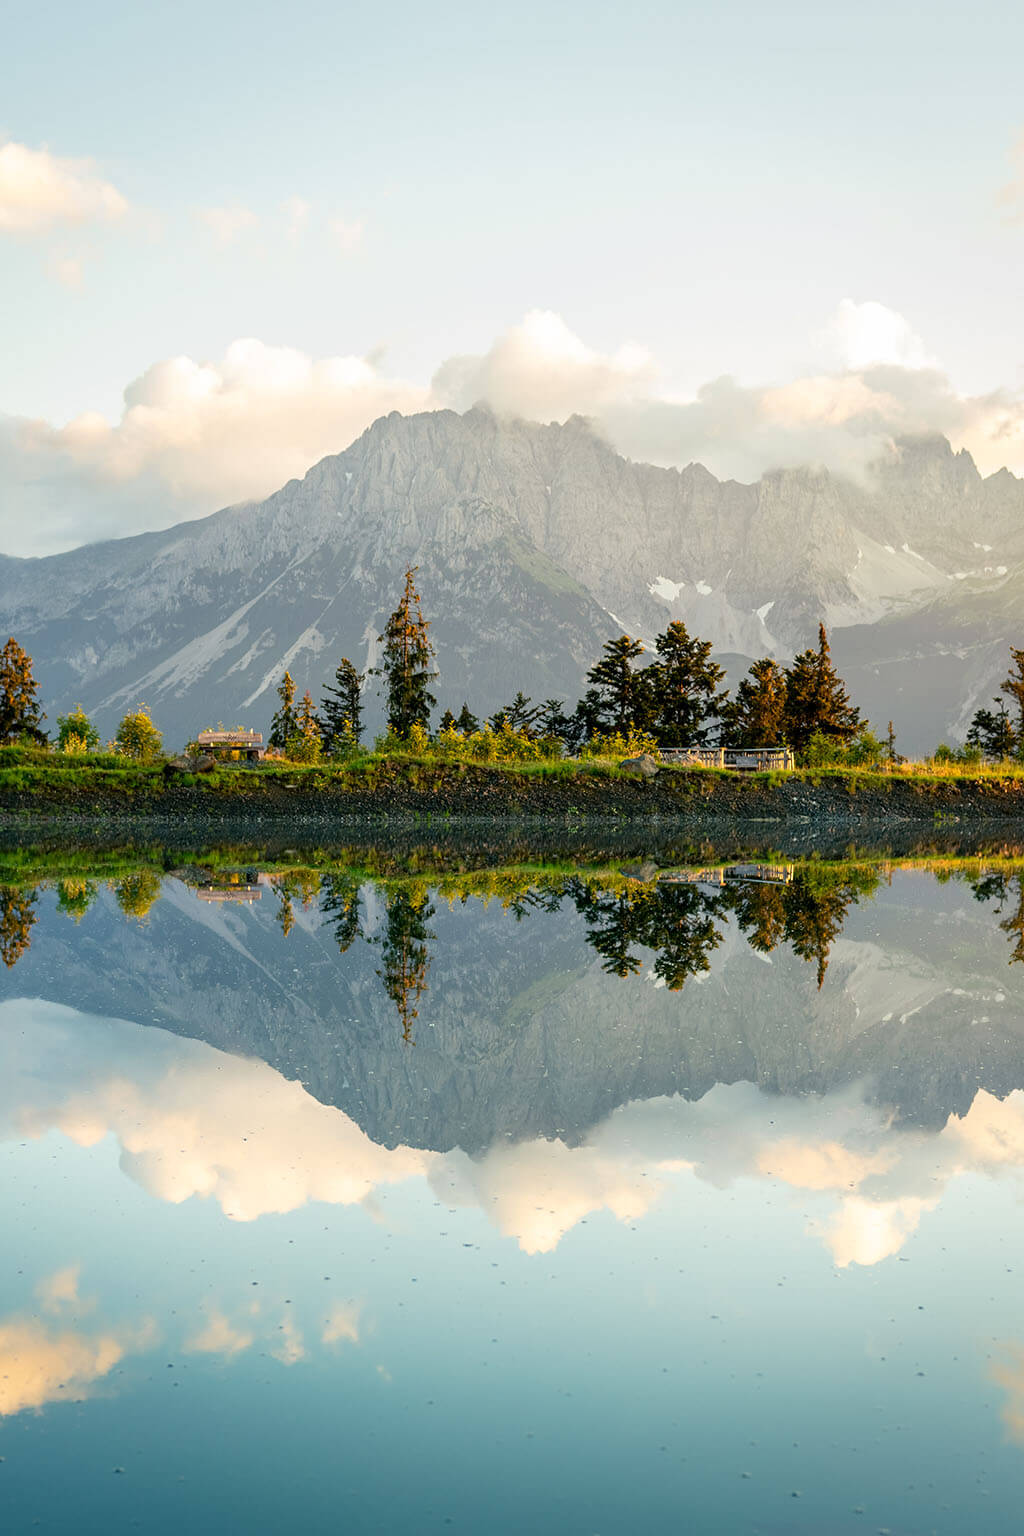 The Kaiser Mountains in Tyrol, Austria